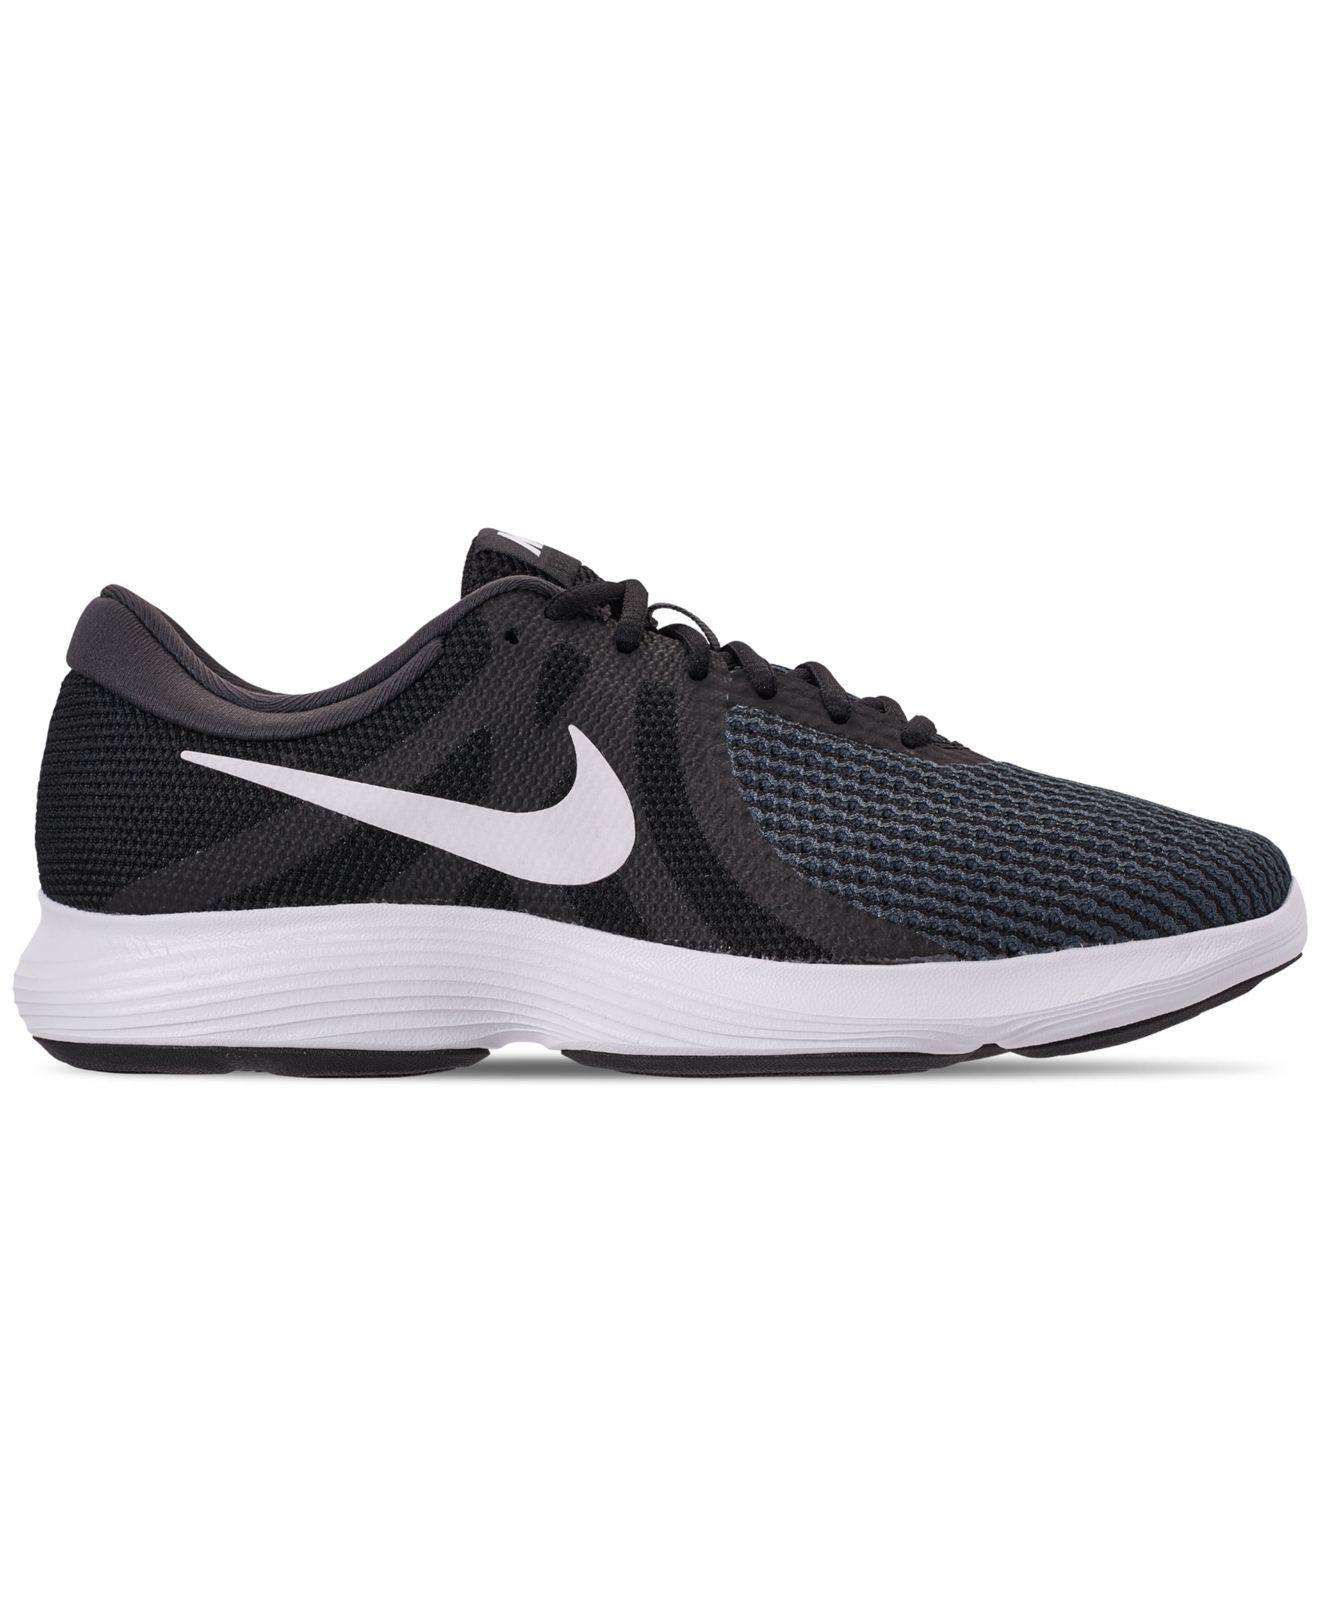 24f4d81c2eed Lyst - Nike Revolution 4 Wide Width Running Sneakers From Finish Line in  Black